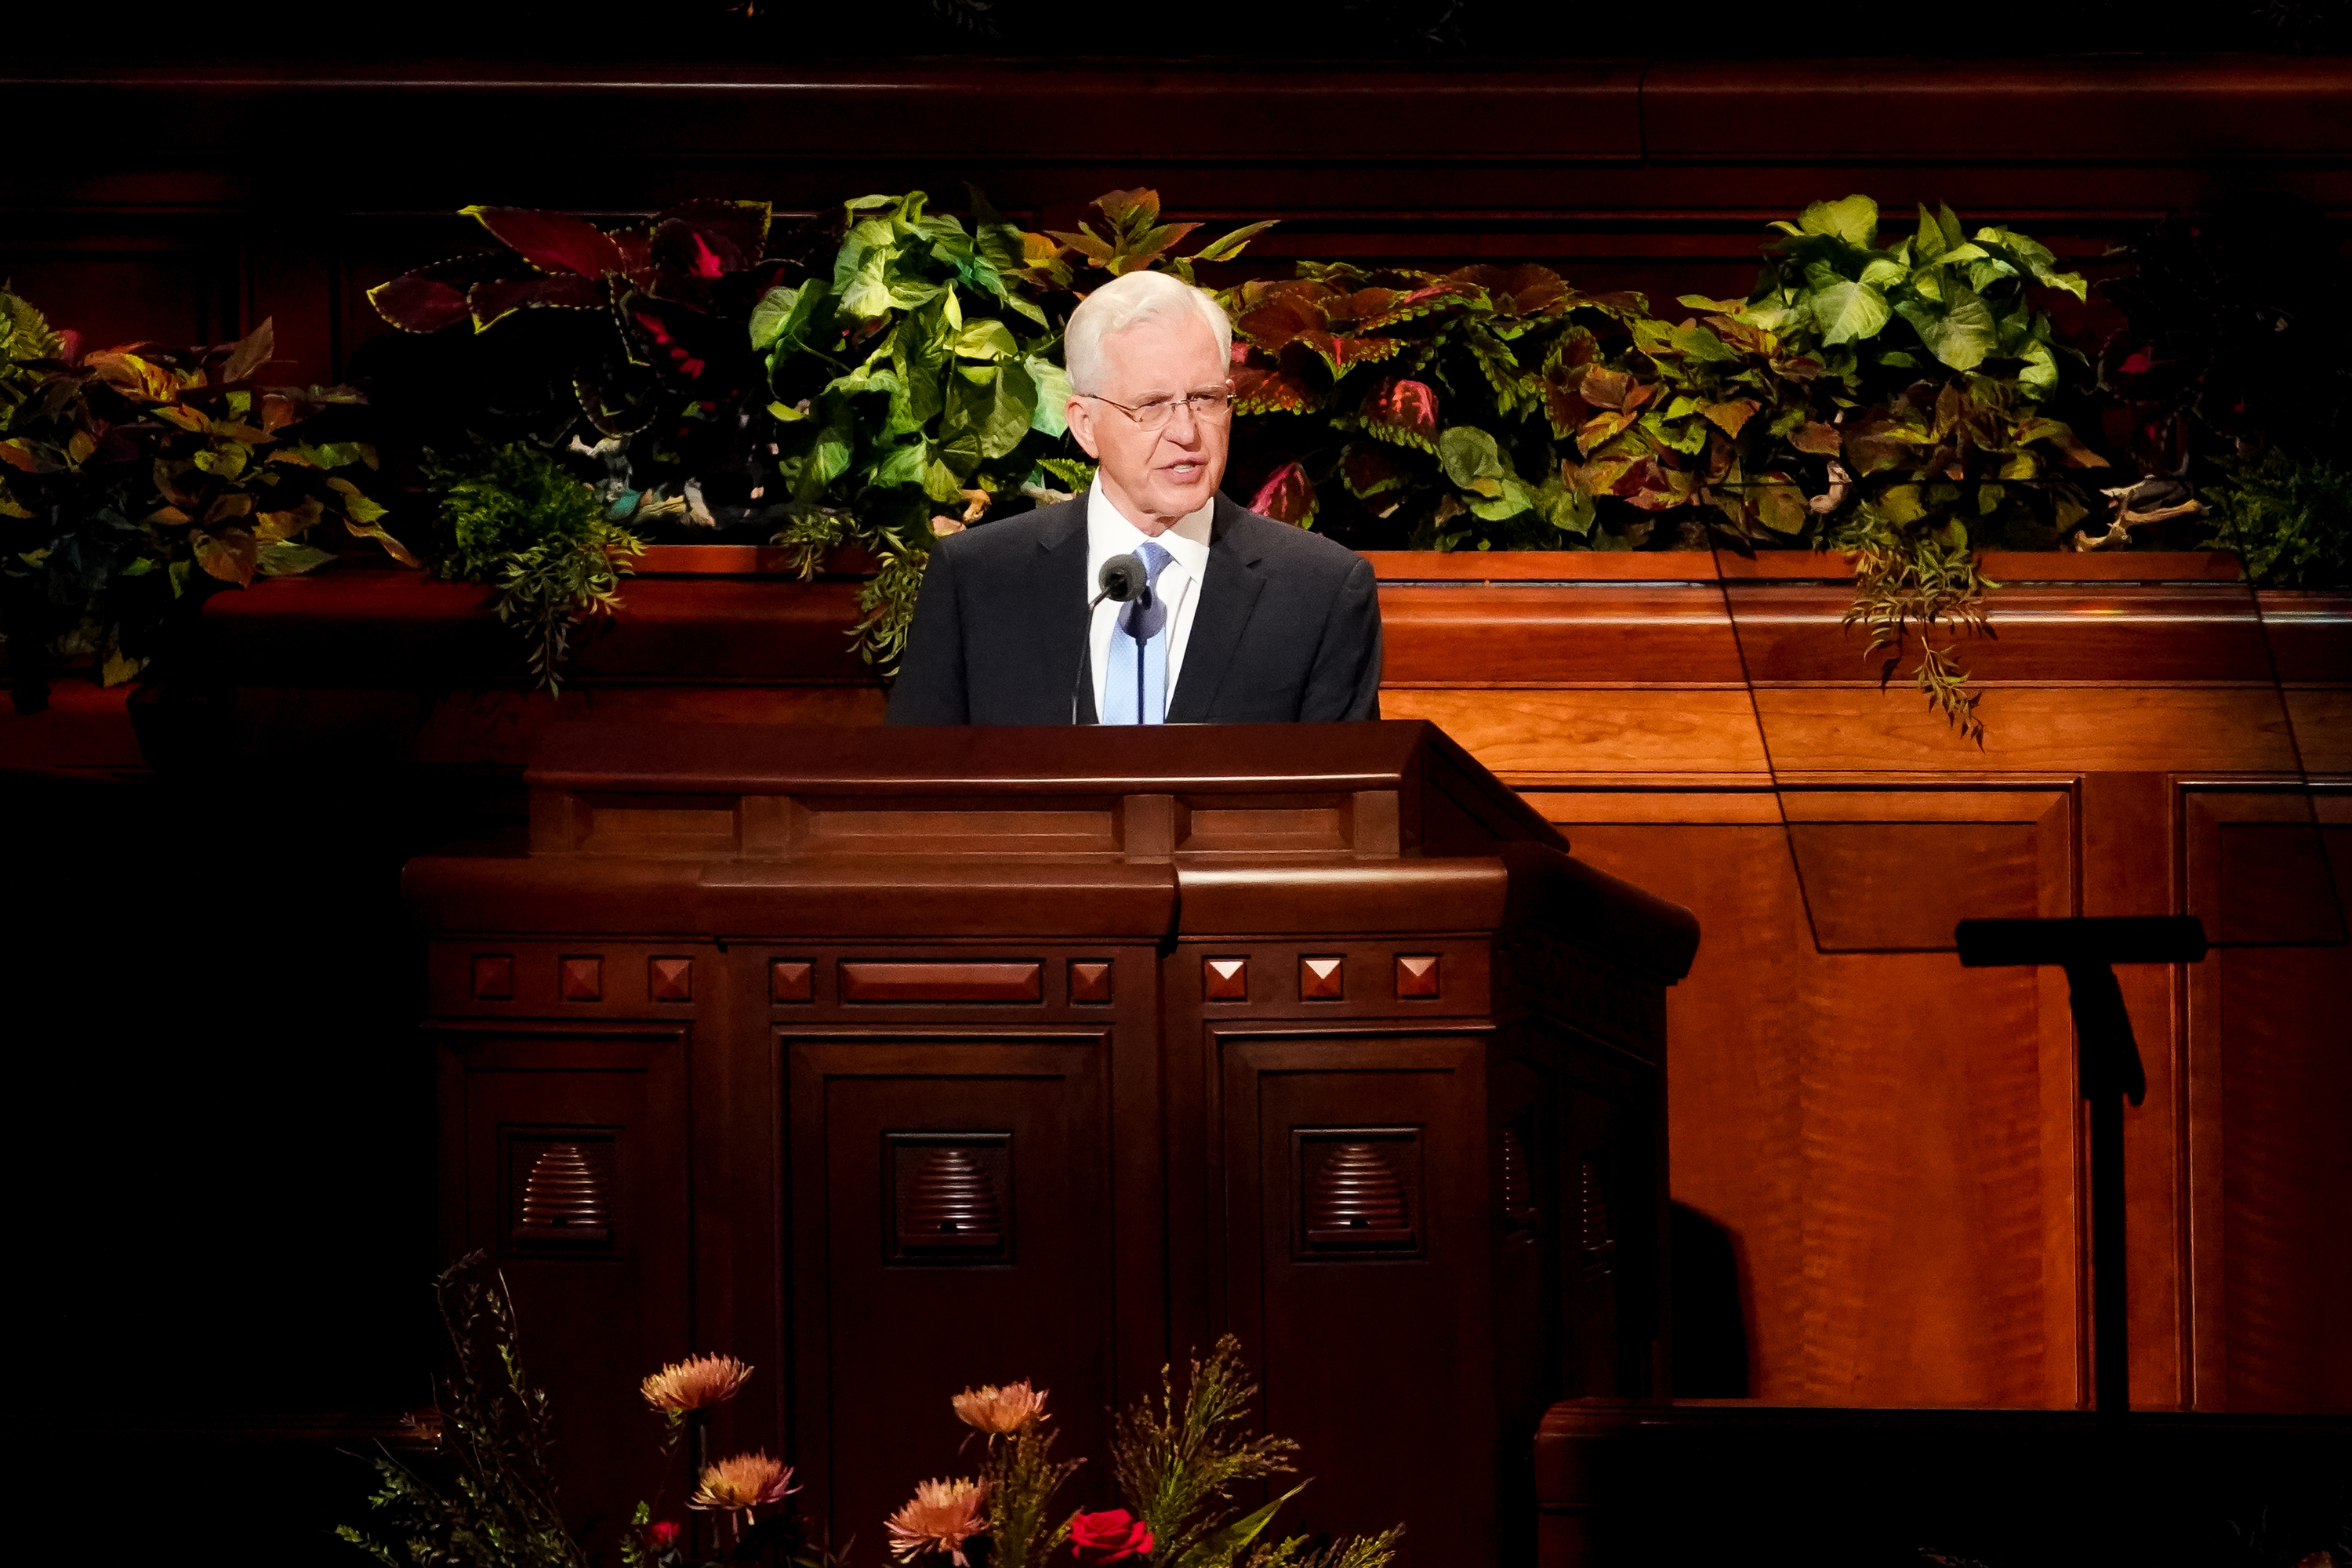 Elder D. Todd Christofferson of the Quorum of the Twelve Apostles speaks during the Saturday morning session of the 189th Semiannual General Conference of The Church of Jesus Christ of Latter-day Saints at the Conference Center in Salt Lake City on Saturday, Oct. 5, 2019.